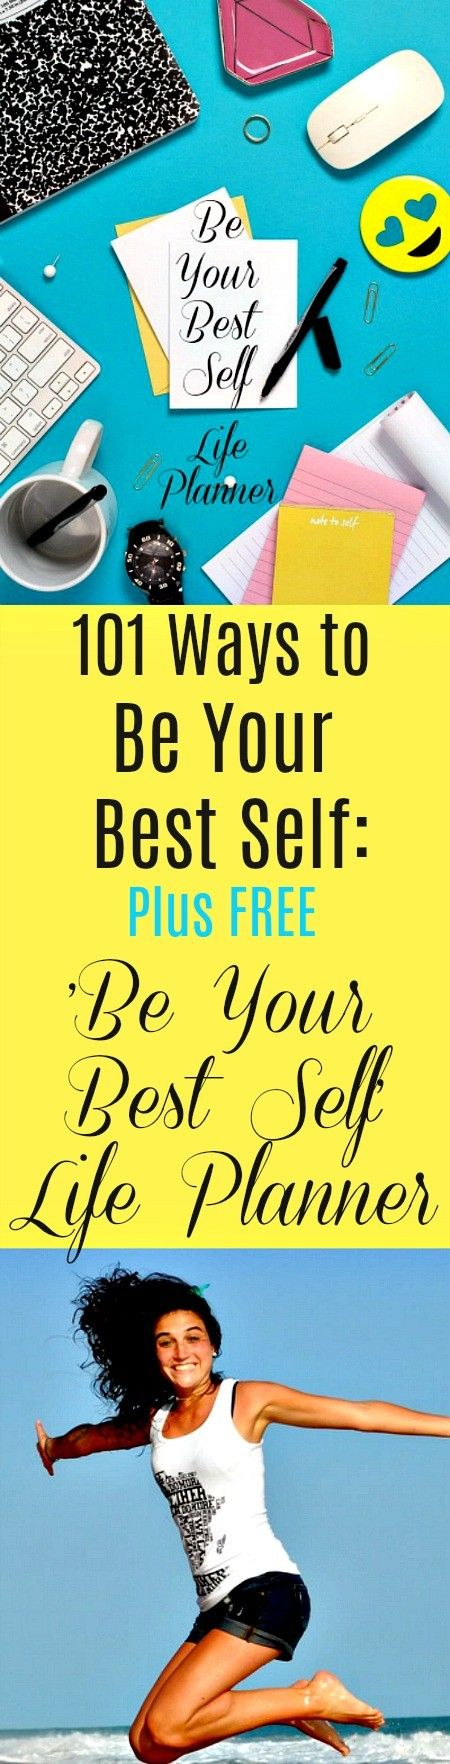 101 Ways to Be Your Best Self Plus FREE 'Be Your Best Self' Life Planner: Personal development helps you grow, achieve your goals and live a long, happy life. It is the foundation of physical, emotional, intellectual and spiritual health. Personal growth is in your hands. Your FREE, Printable 'Be Your Best Self'' Life Planner provides you with 365 days of pages to focus on -- and keep track of -- your personal growth and development. #personalgrowth #change #growth #personaldevelopment…